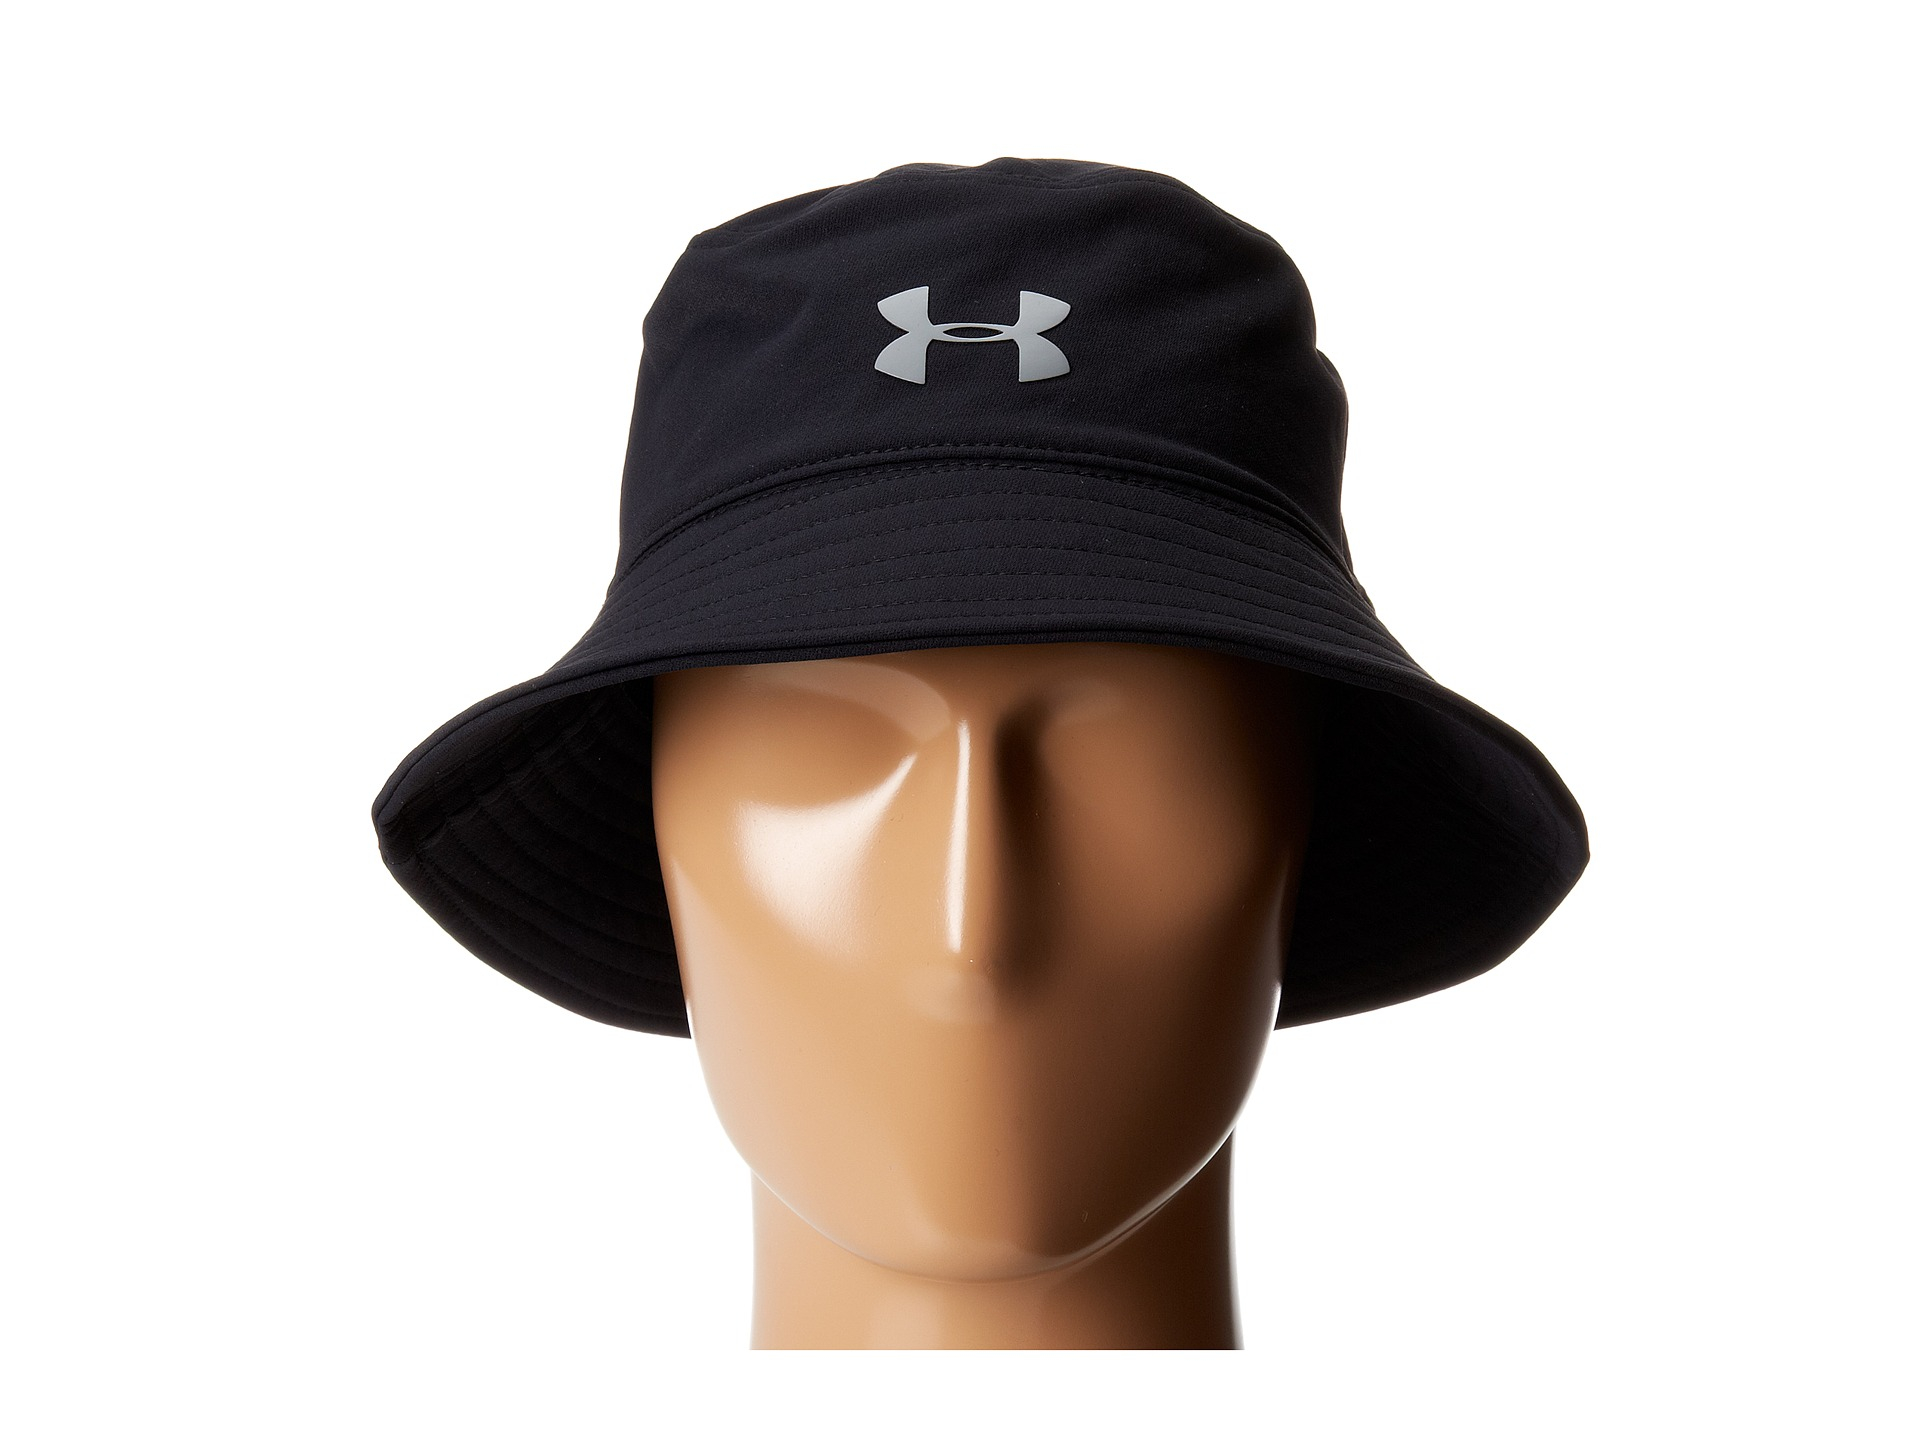 91778fb6897 Under Armour Youth Bucket Hats - Hat HD Image Ukjugs.Org